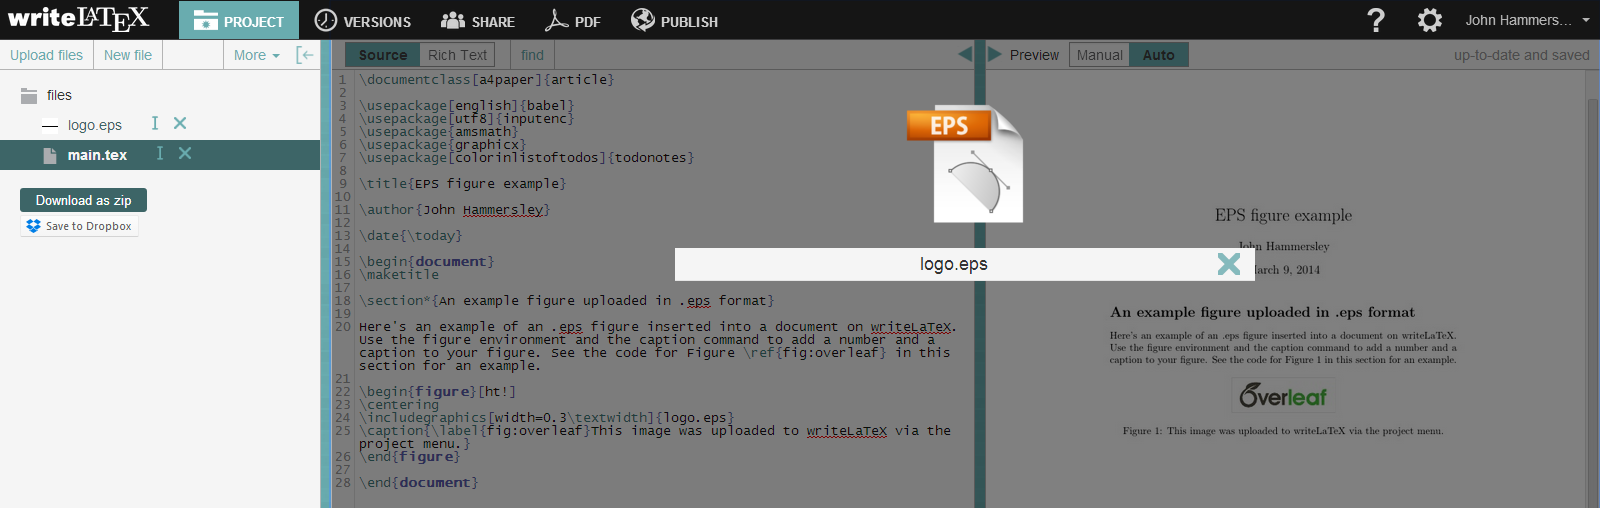 Writelatex eps figure upload example screenshot